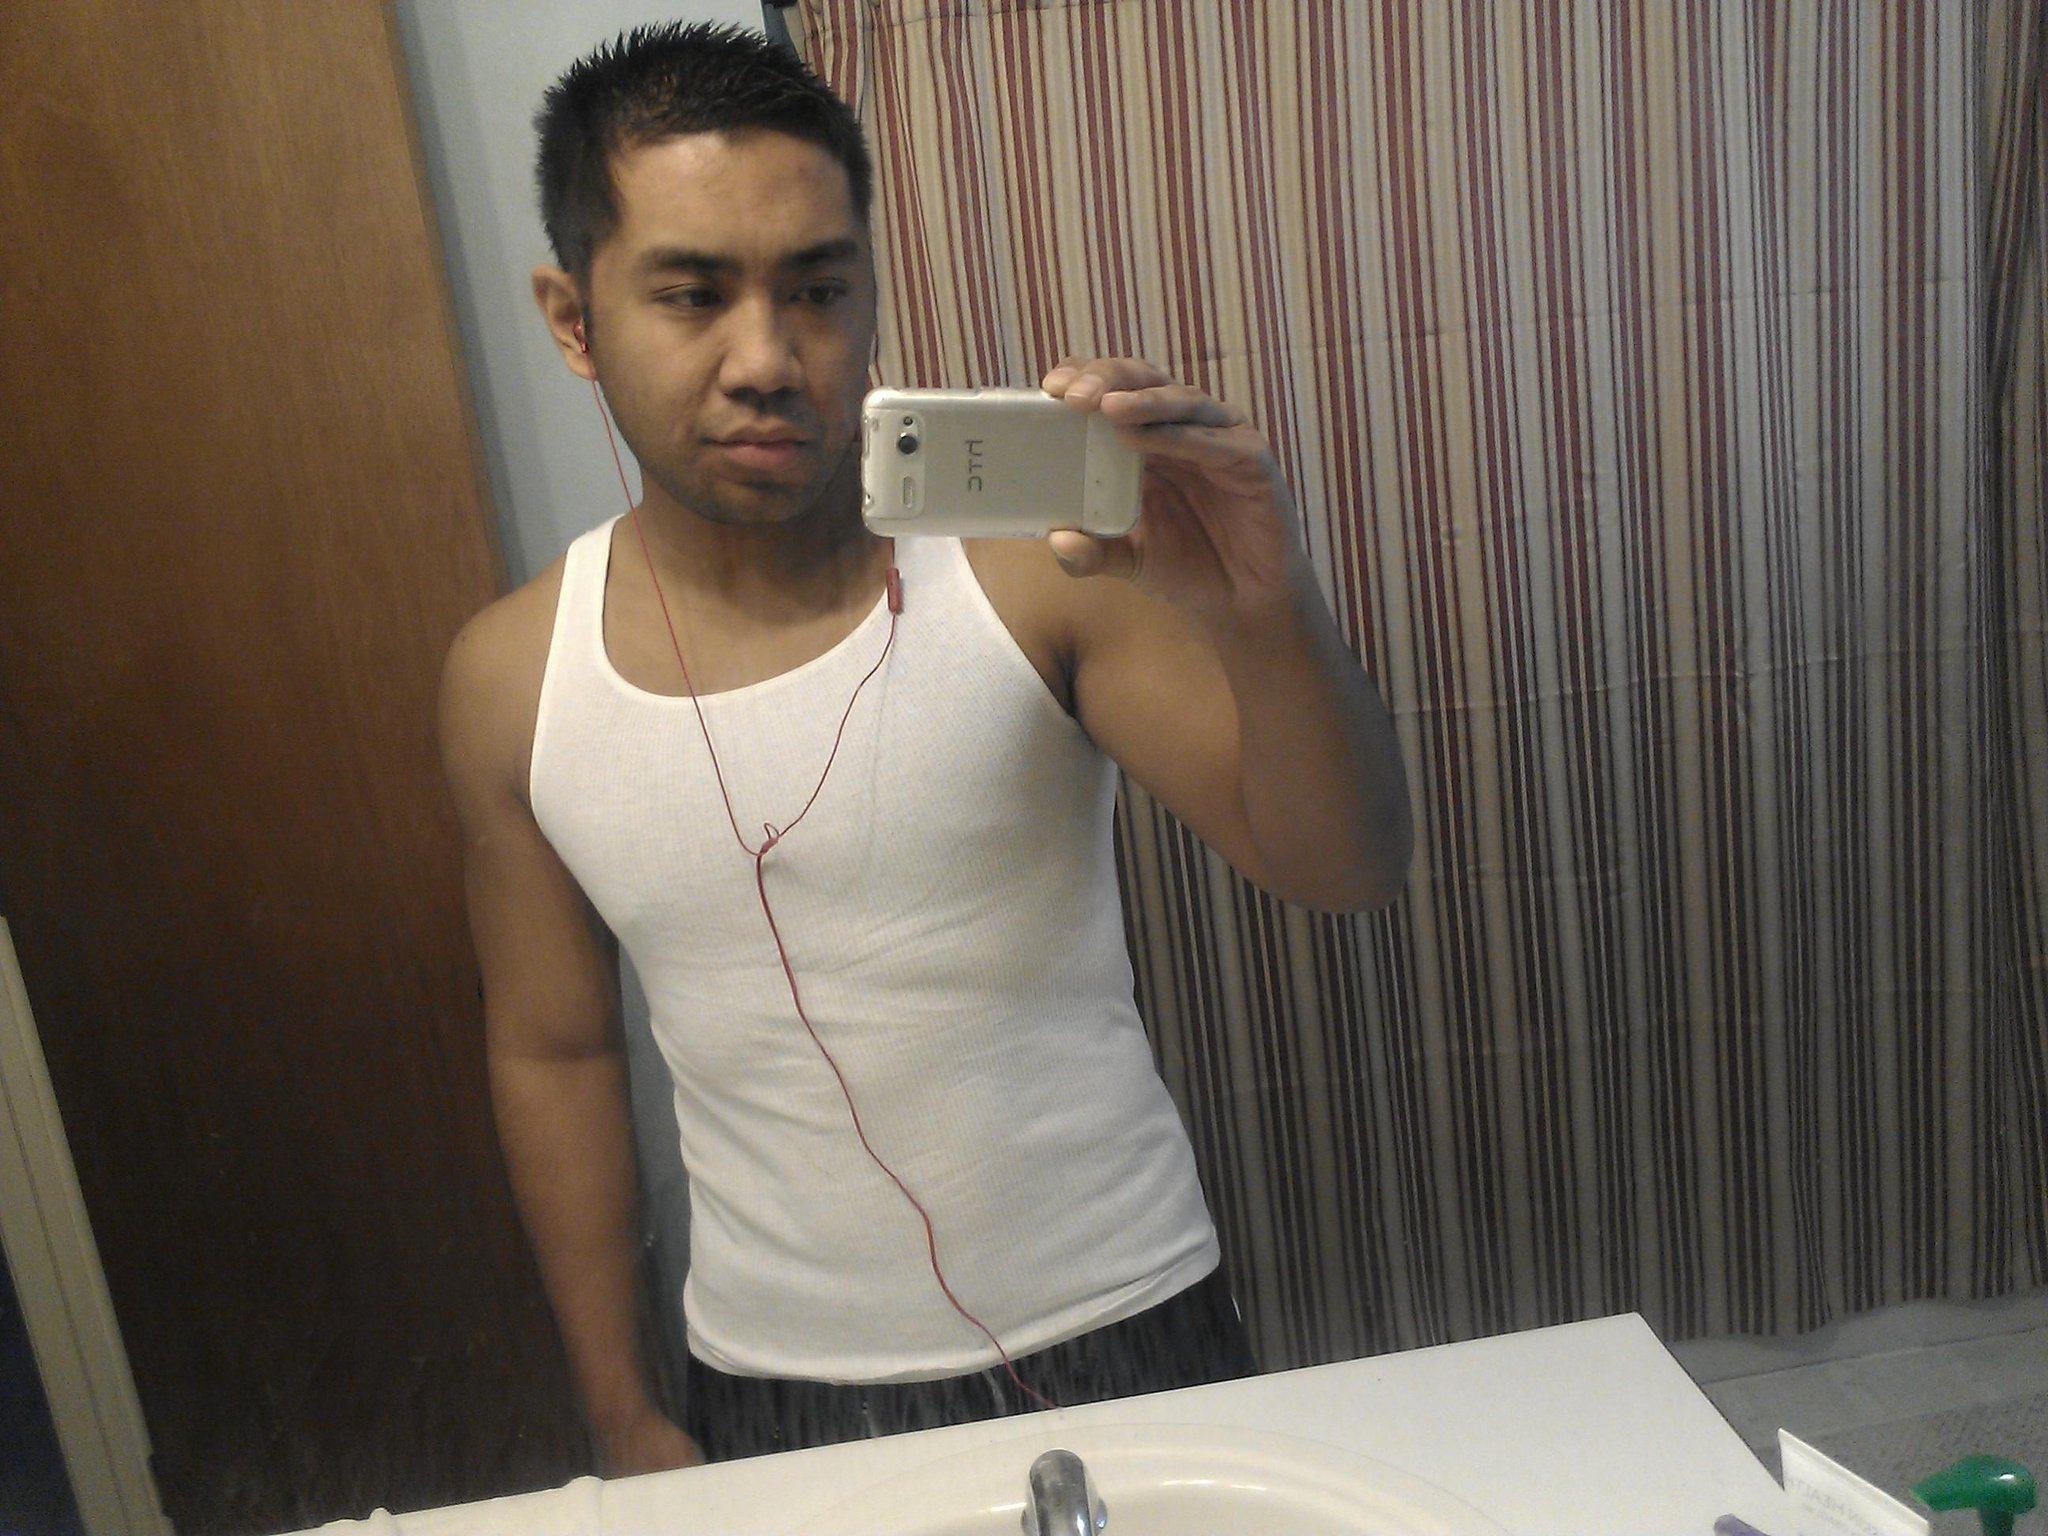 I refuse to be part of the man boob mafia gotta get rid of the pudge http://t.co/M4wnaxgq